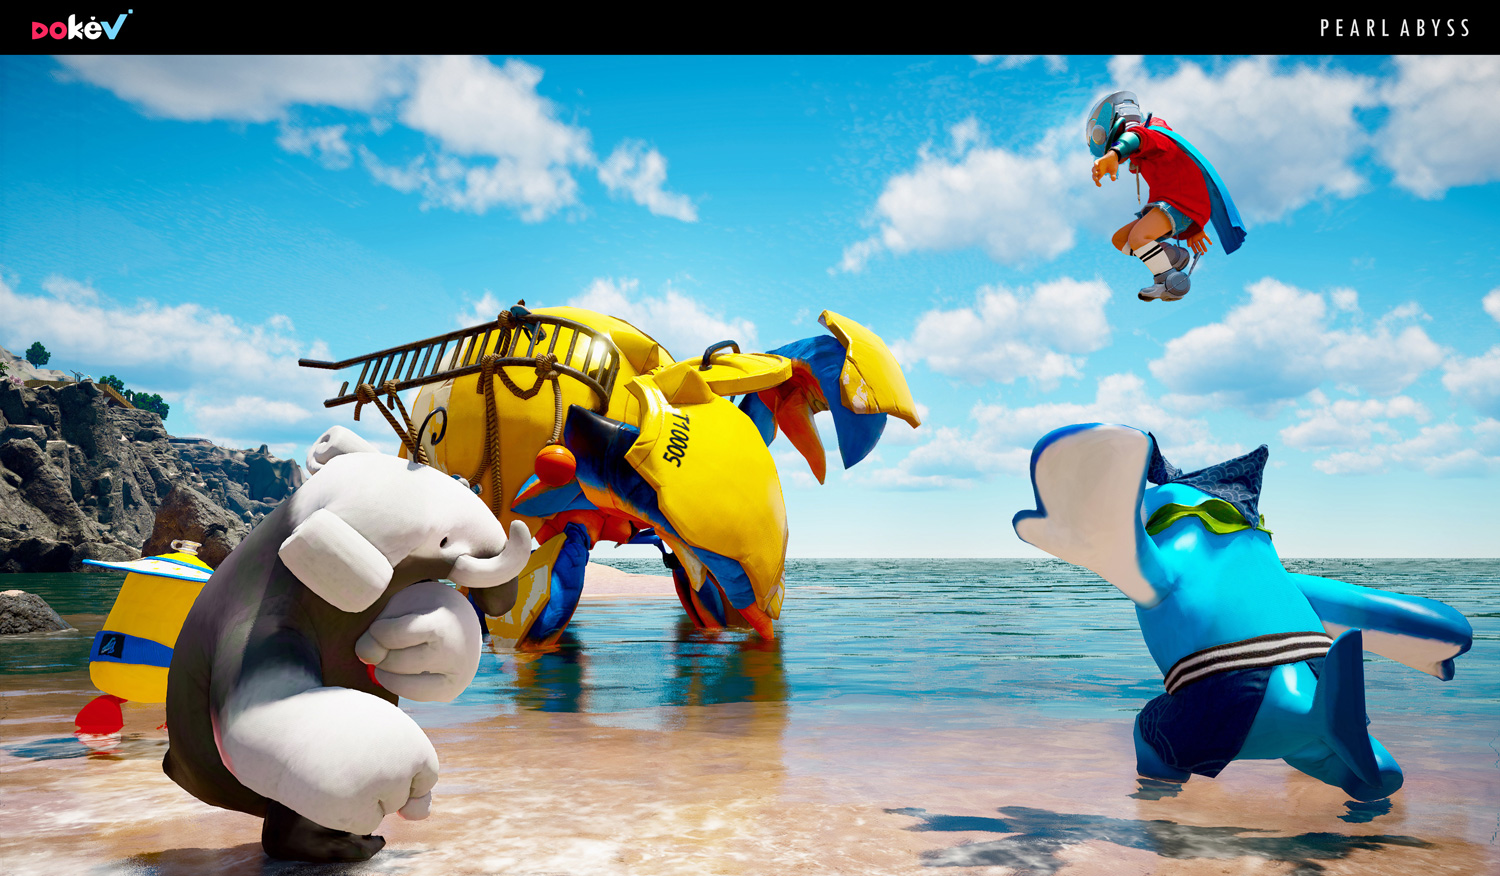 creatures playing in water with a kid flying above